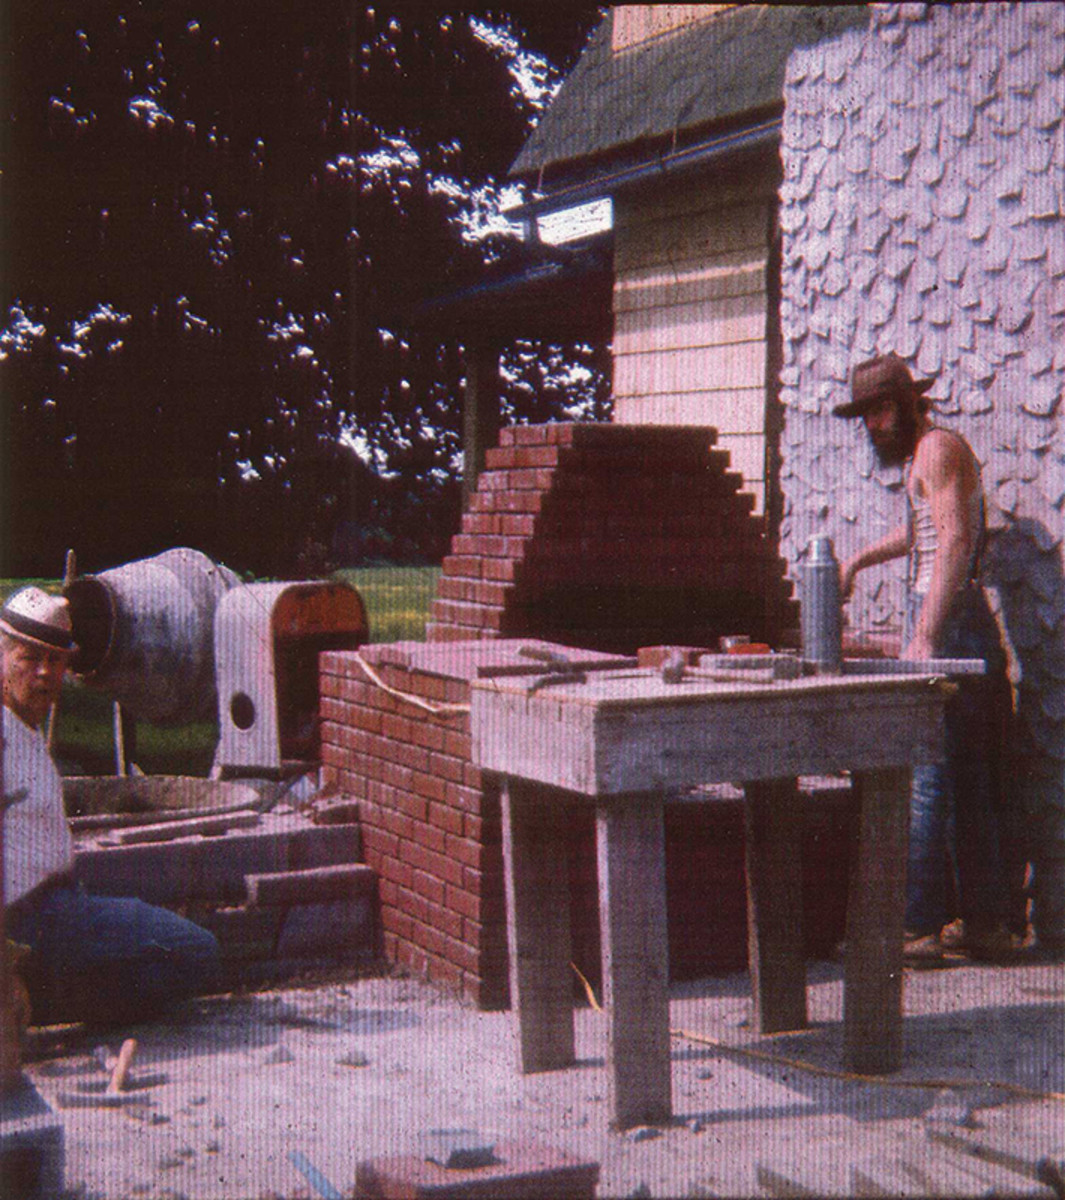 Stonemason mentor on the left, Marshall Pruitt. On the right, a younger Ken Follett.